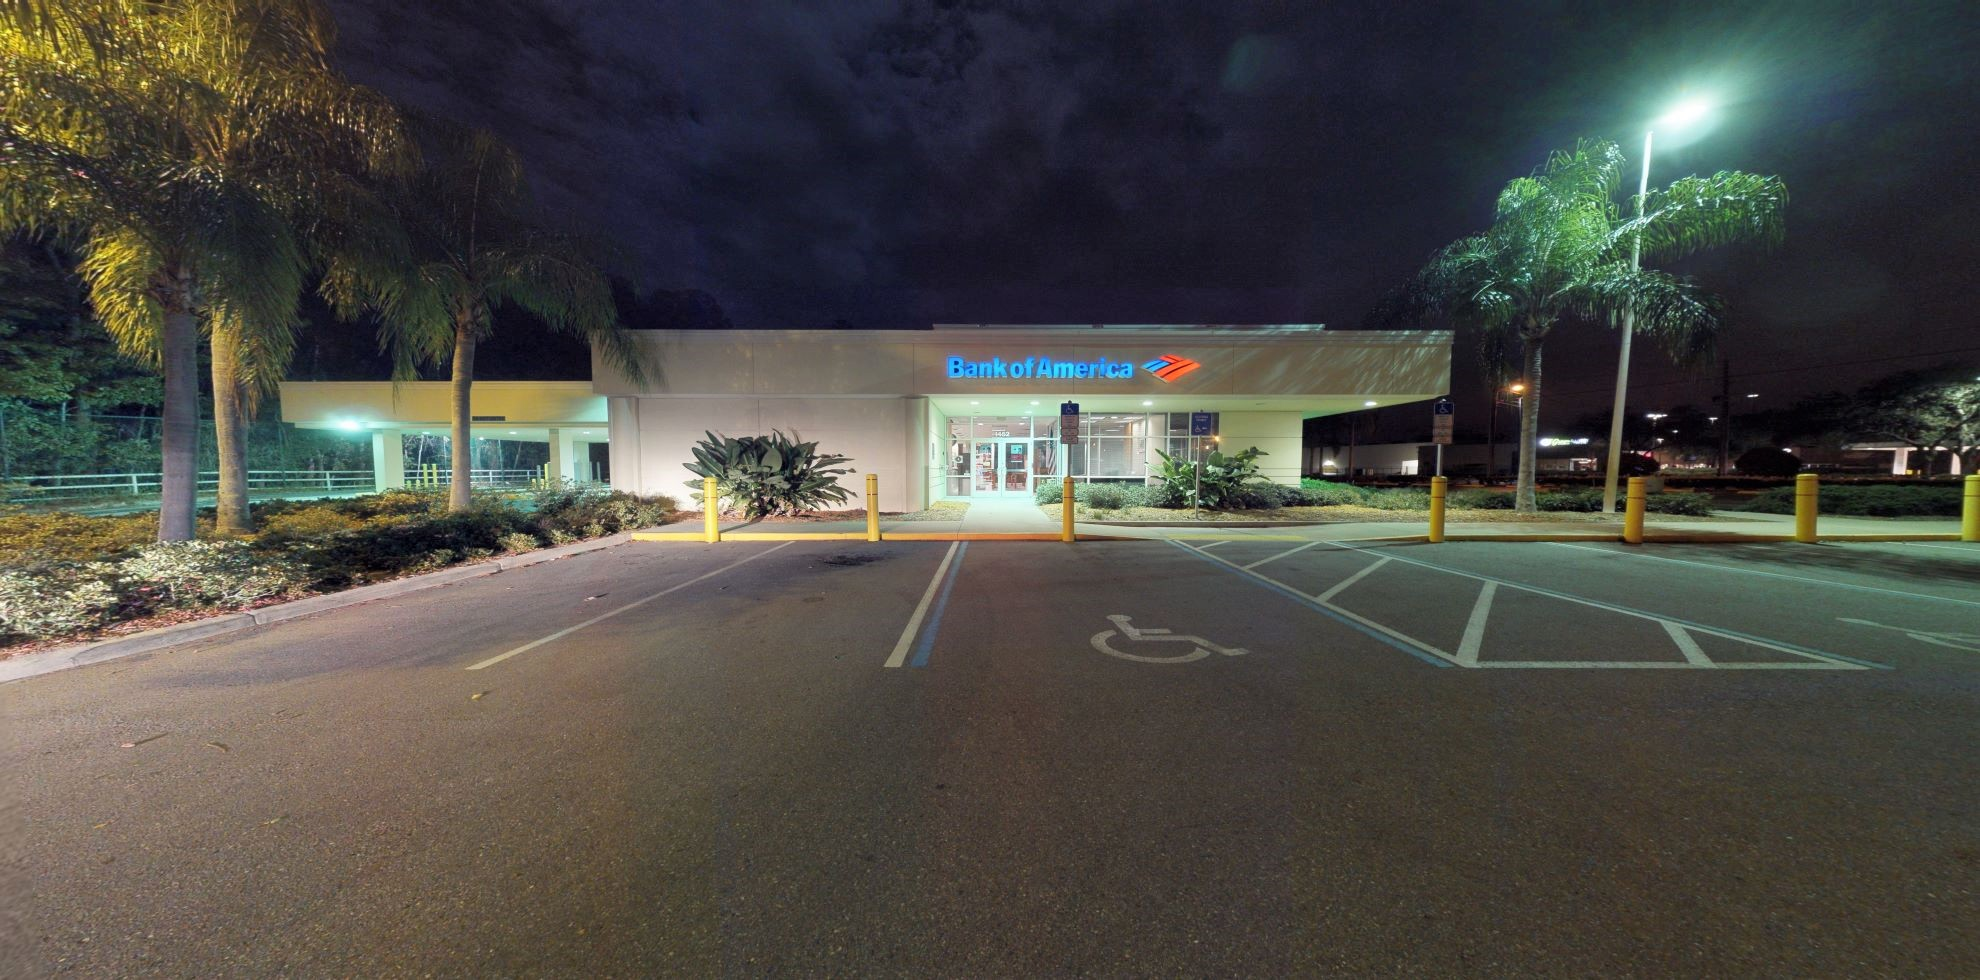 Bank of America financial center with drive-thru ATM   1452 Seven Springs Blvd, New Port Richey, FL 34655